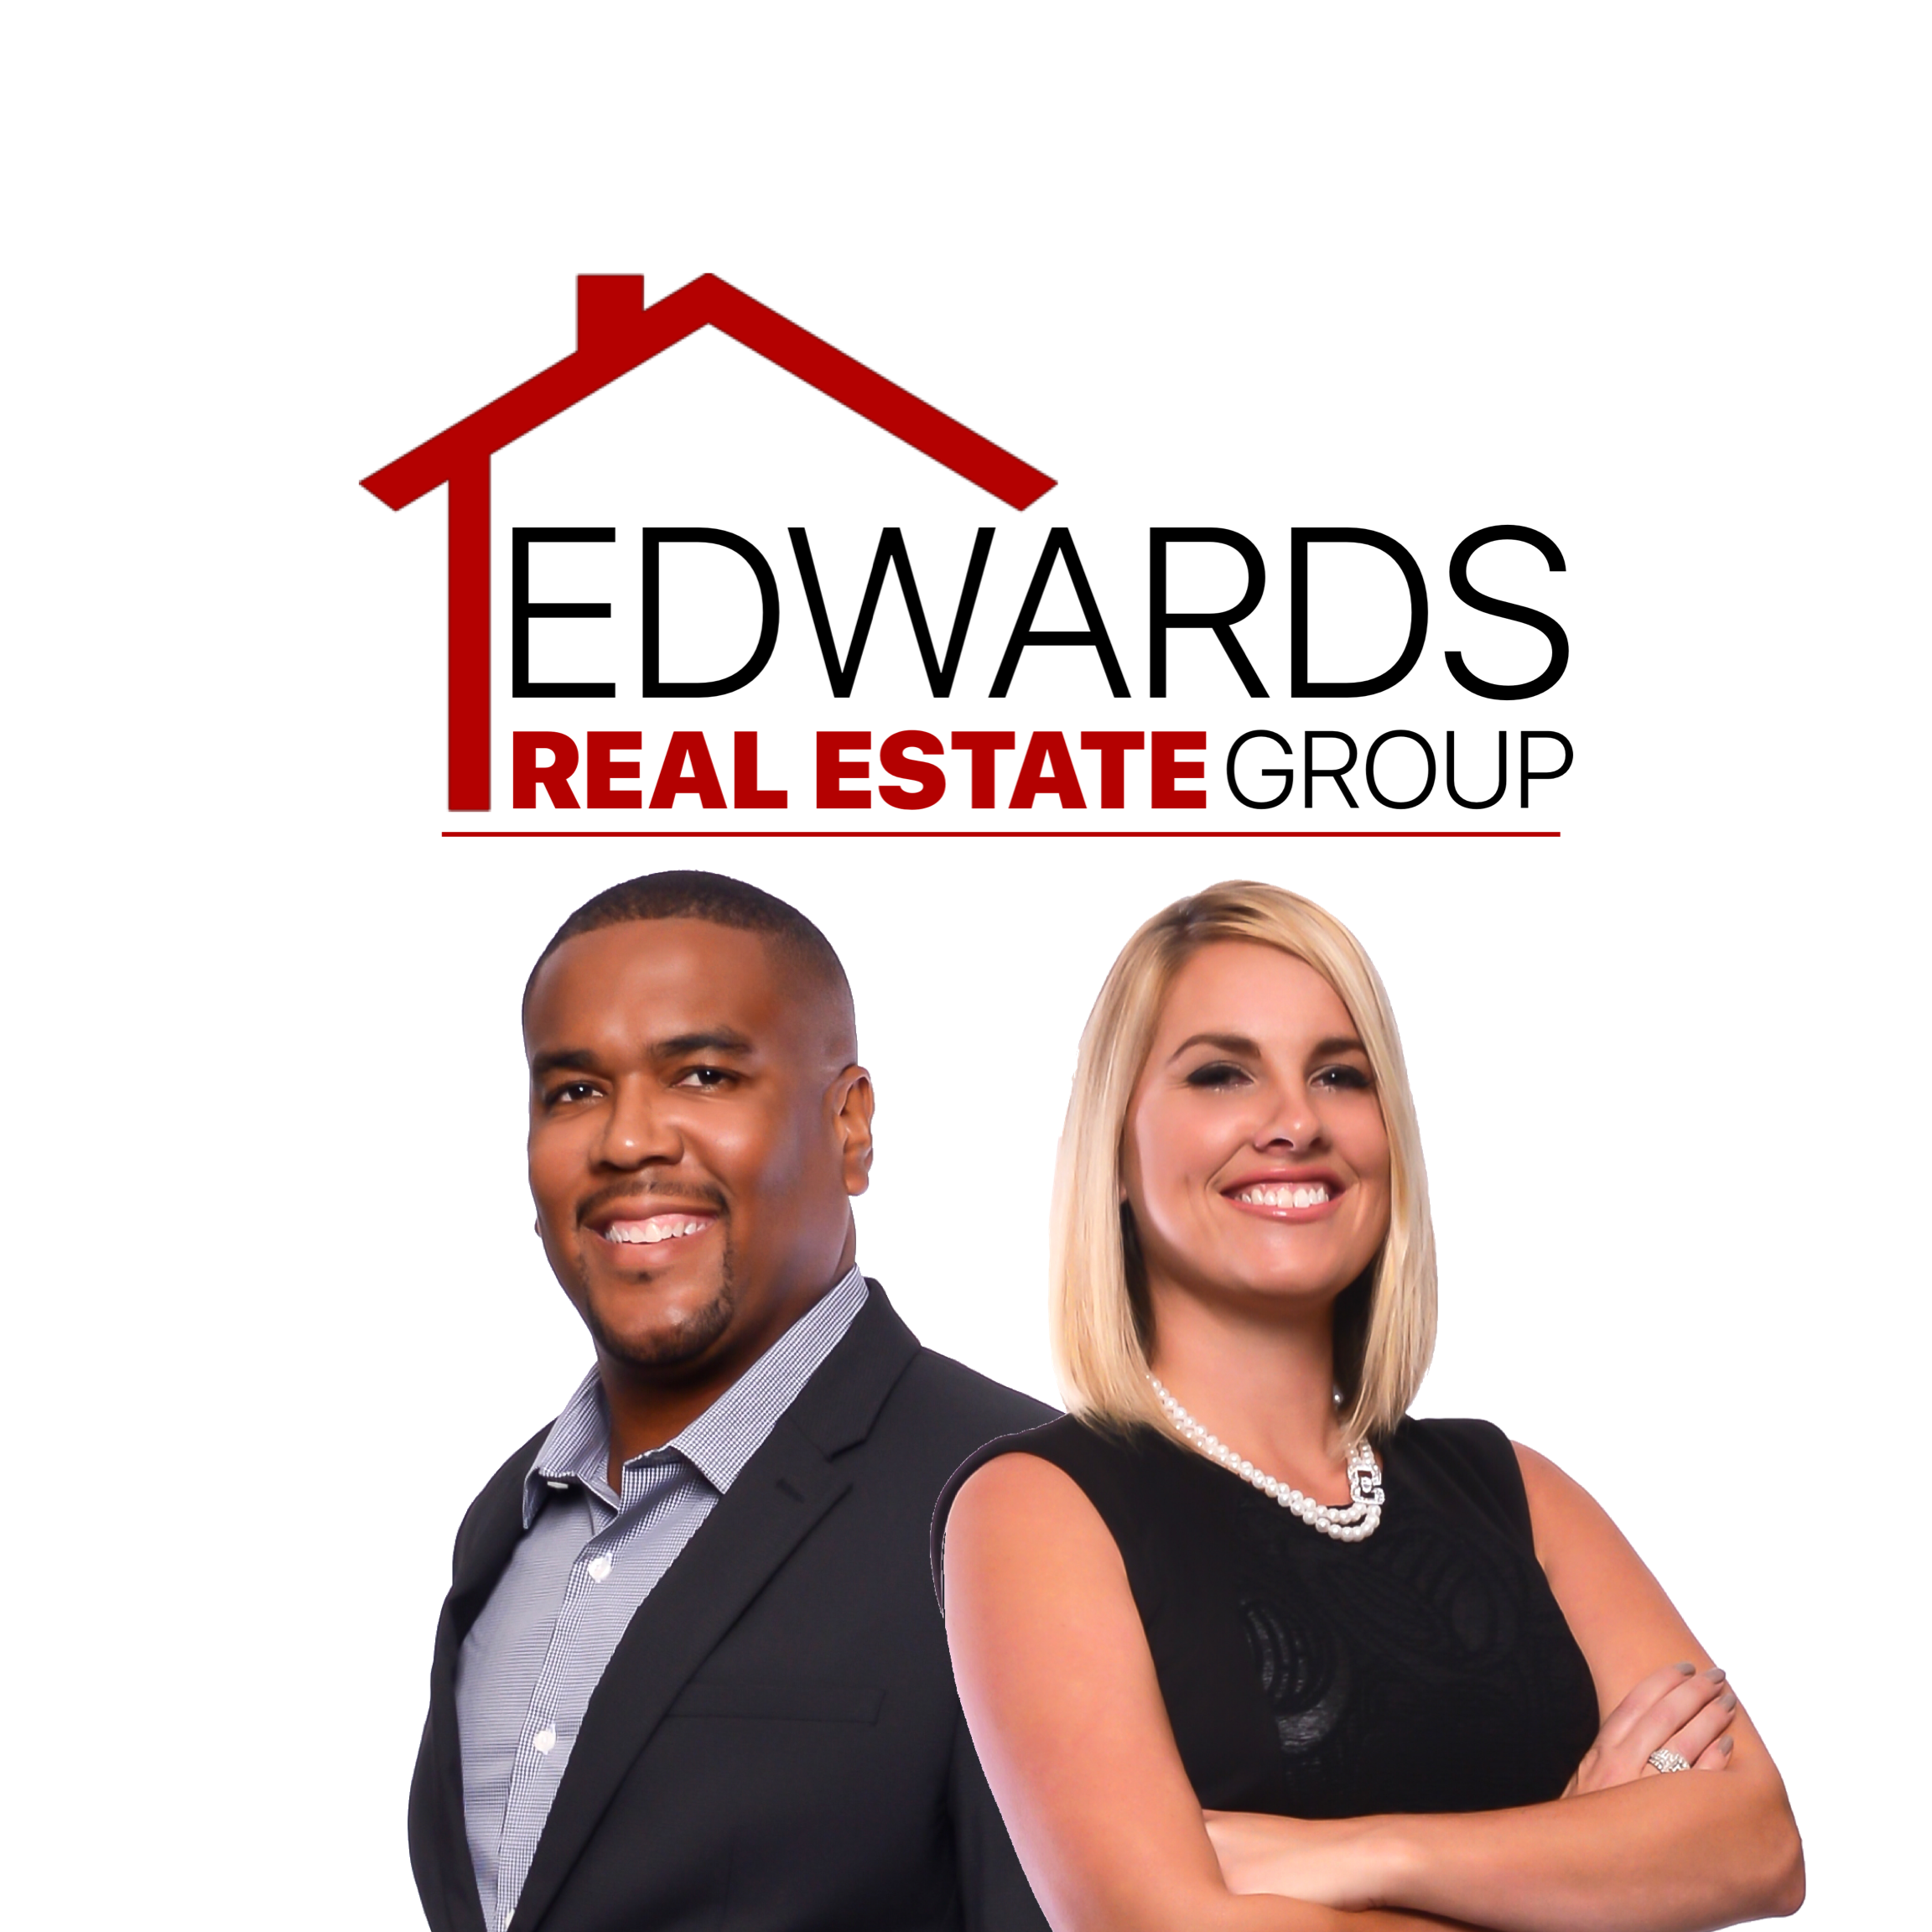 Corey & Heather Edwards with The Edwards Real Estate Group